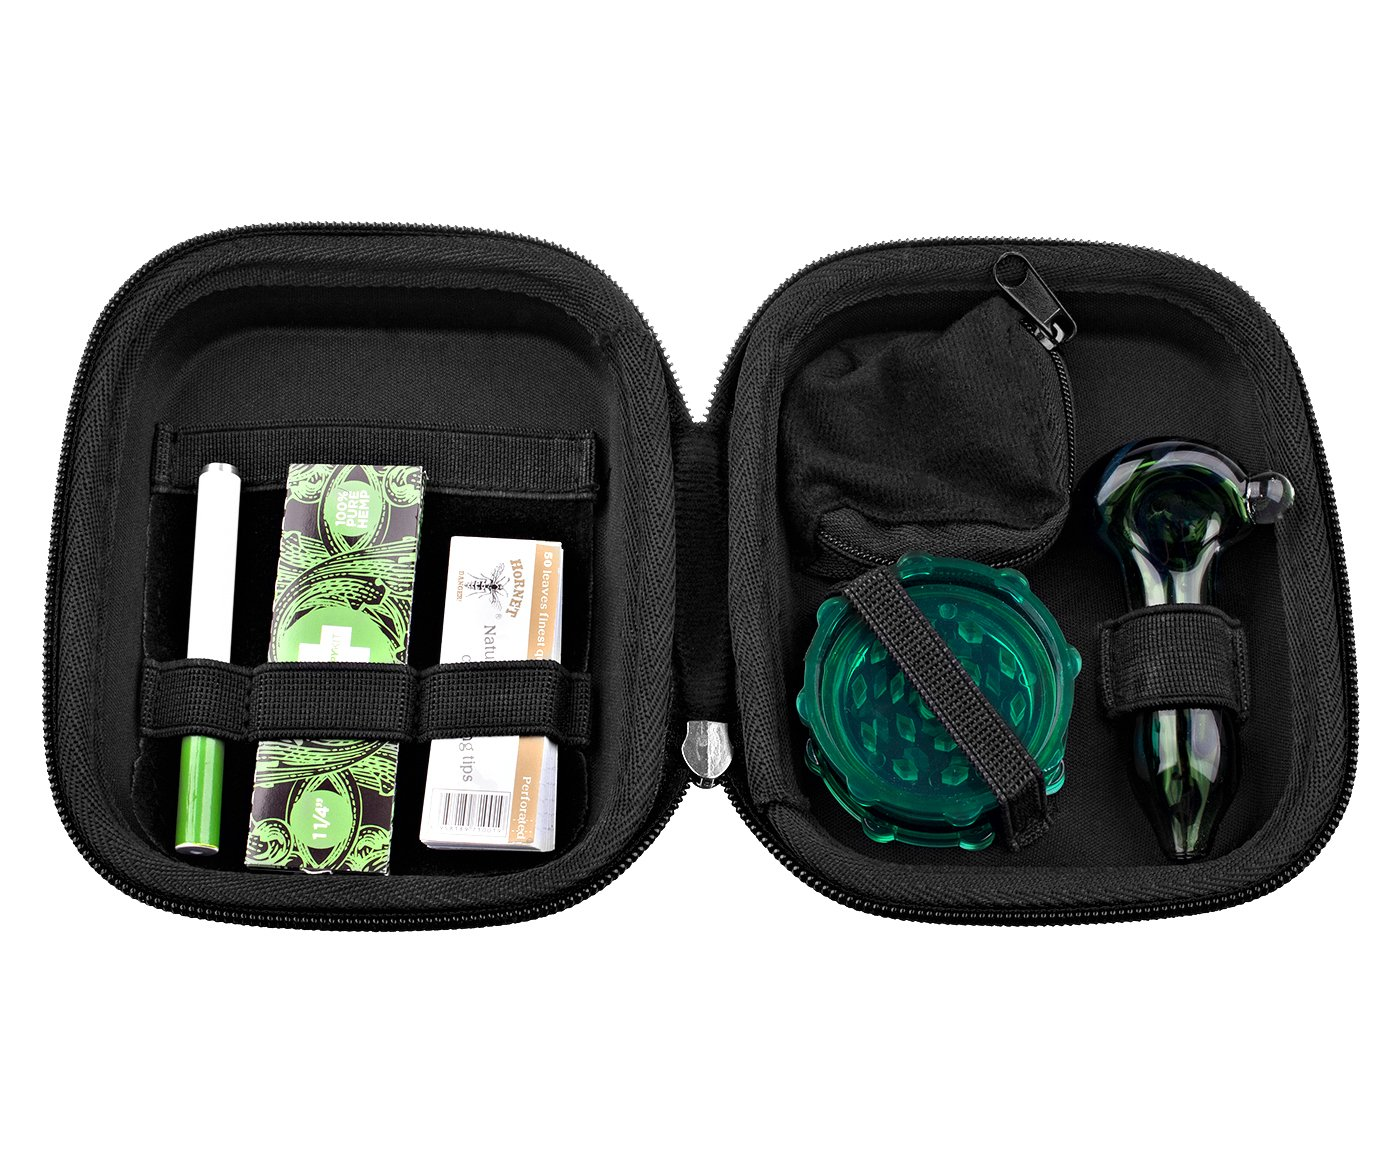 The Happy Kit - All in One Smoking Pouch /Case for Tobacco Smoker - Includes Herb Grinder, Rolling Paper+filter, Pipes.